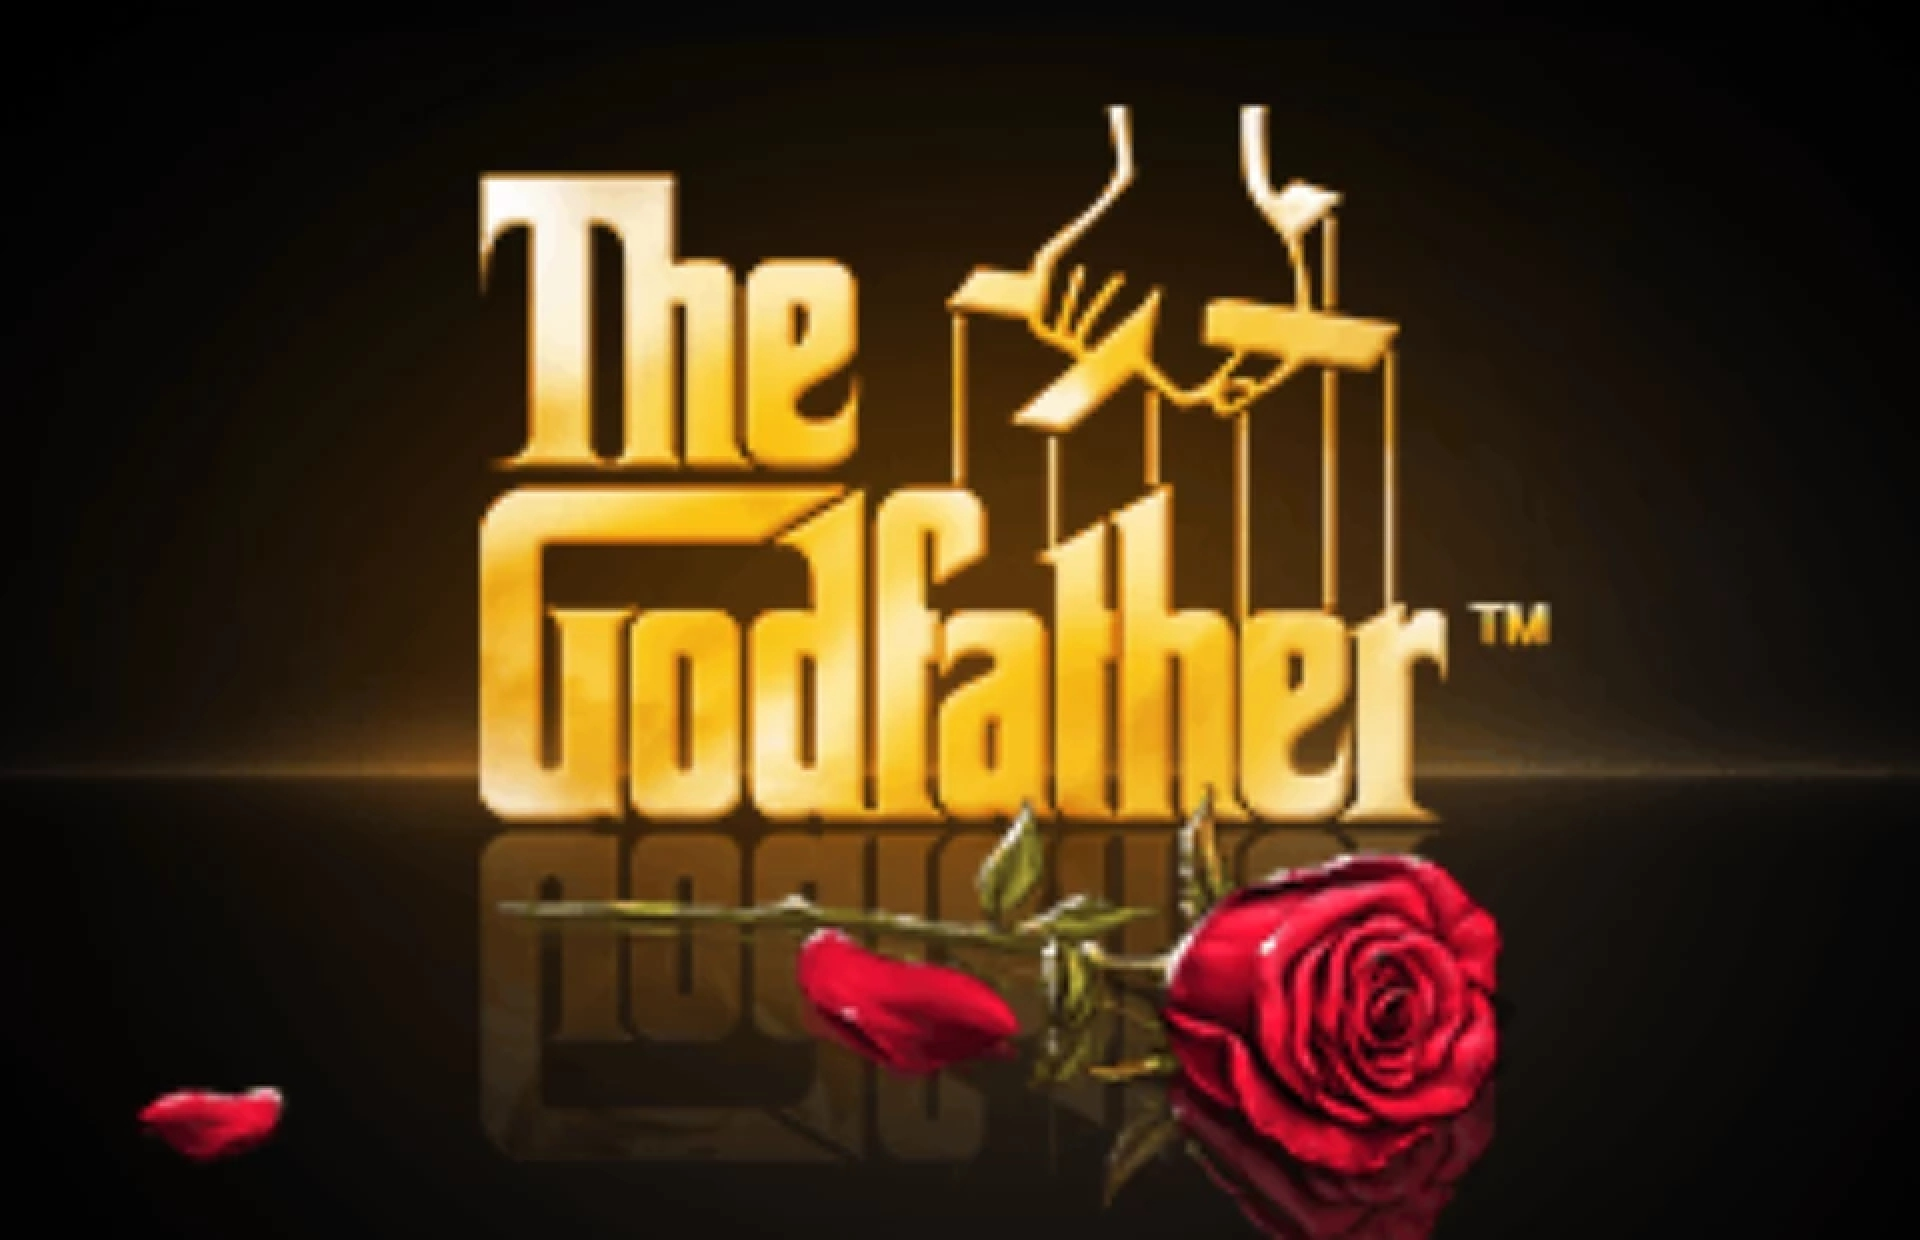 The The Godfather Capos & Foes Online Slot Demo Game by Gamesys